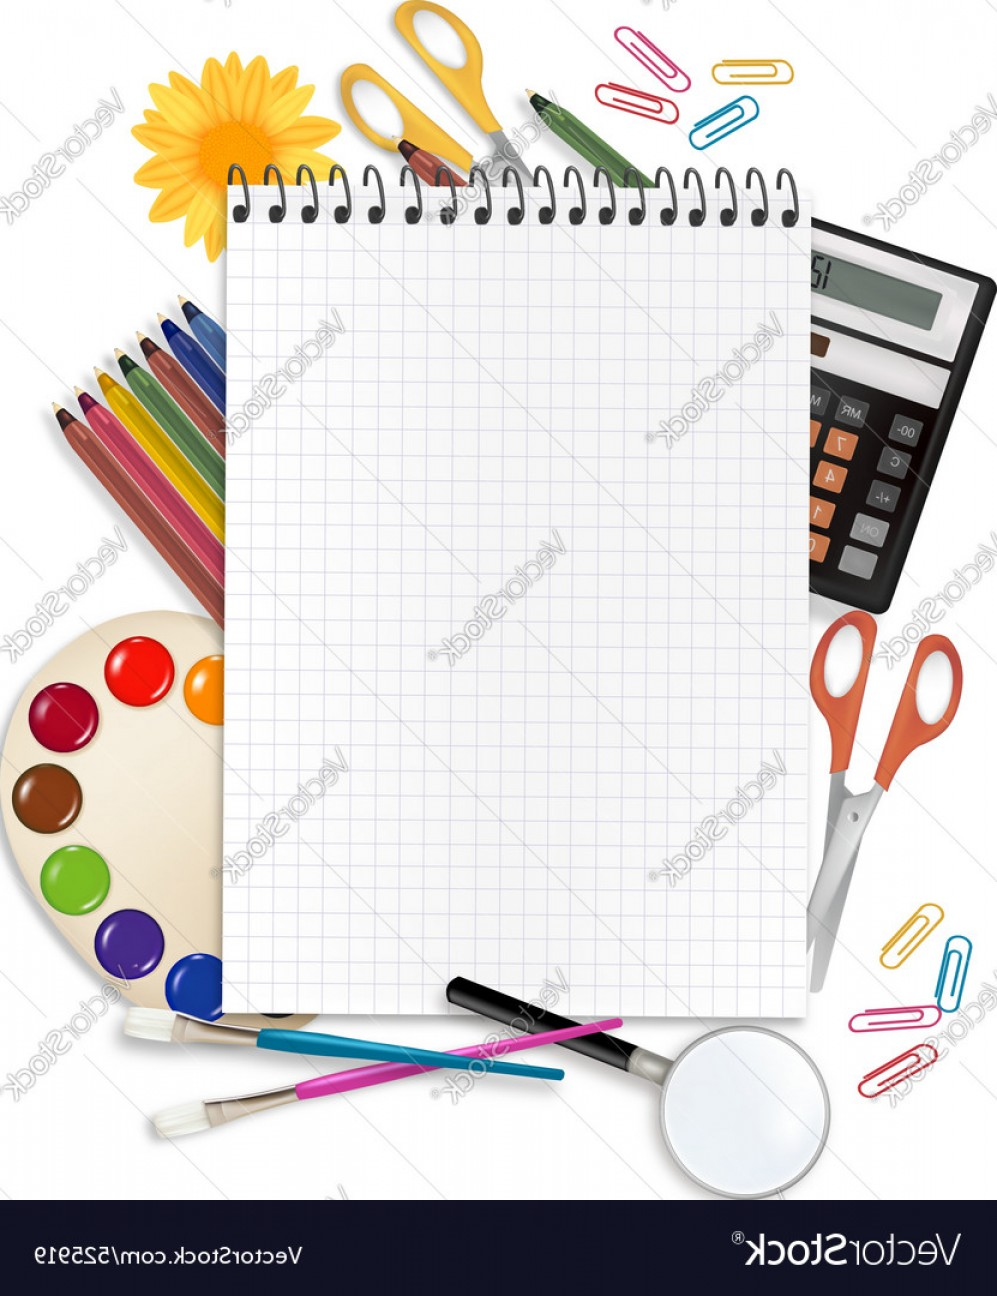 Individual School Supplies Vector: Desing With School Suppliess Set Vector